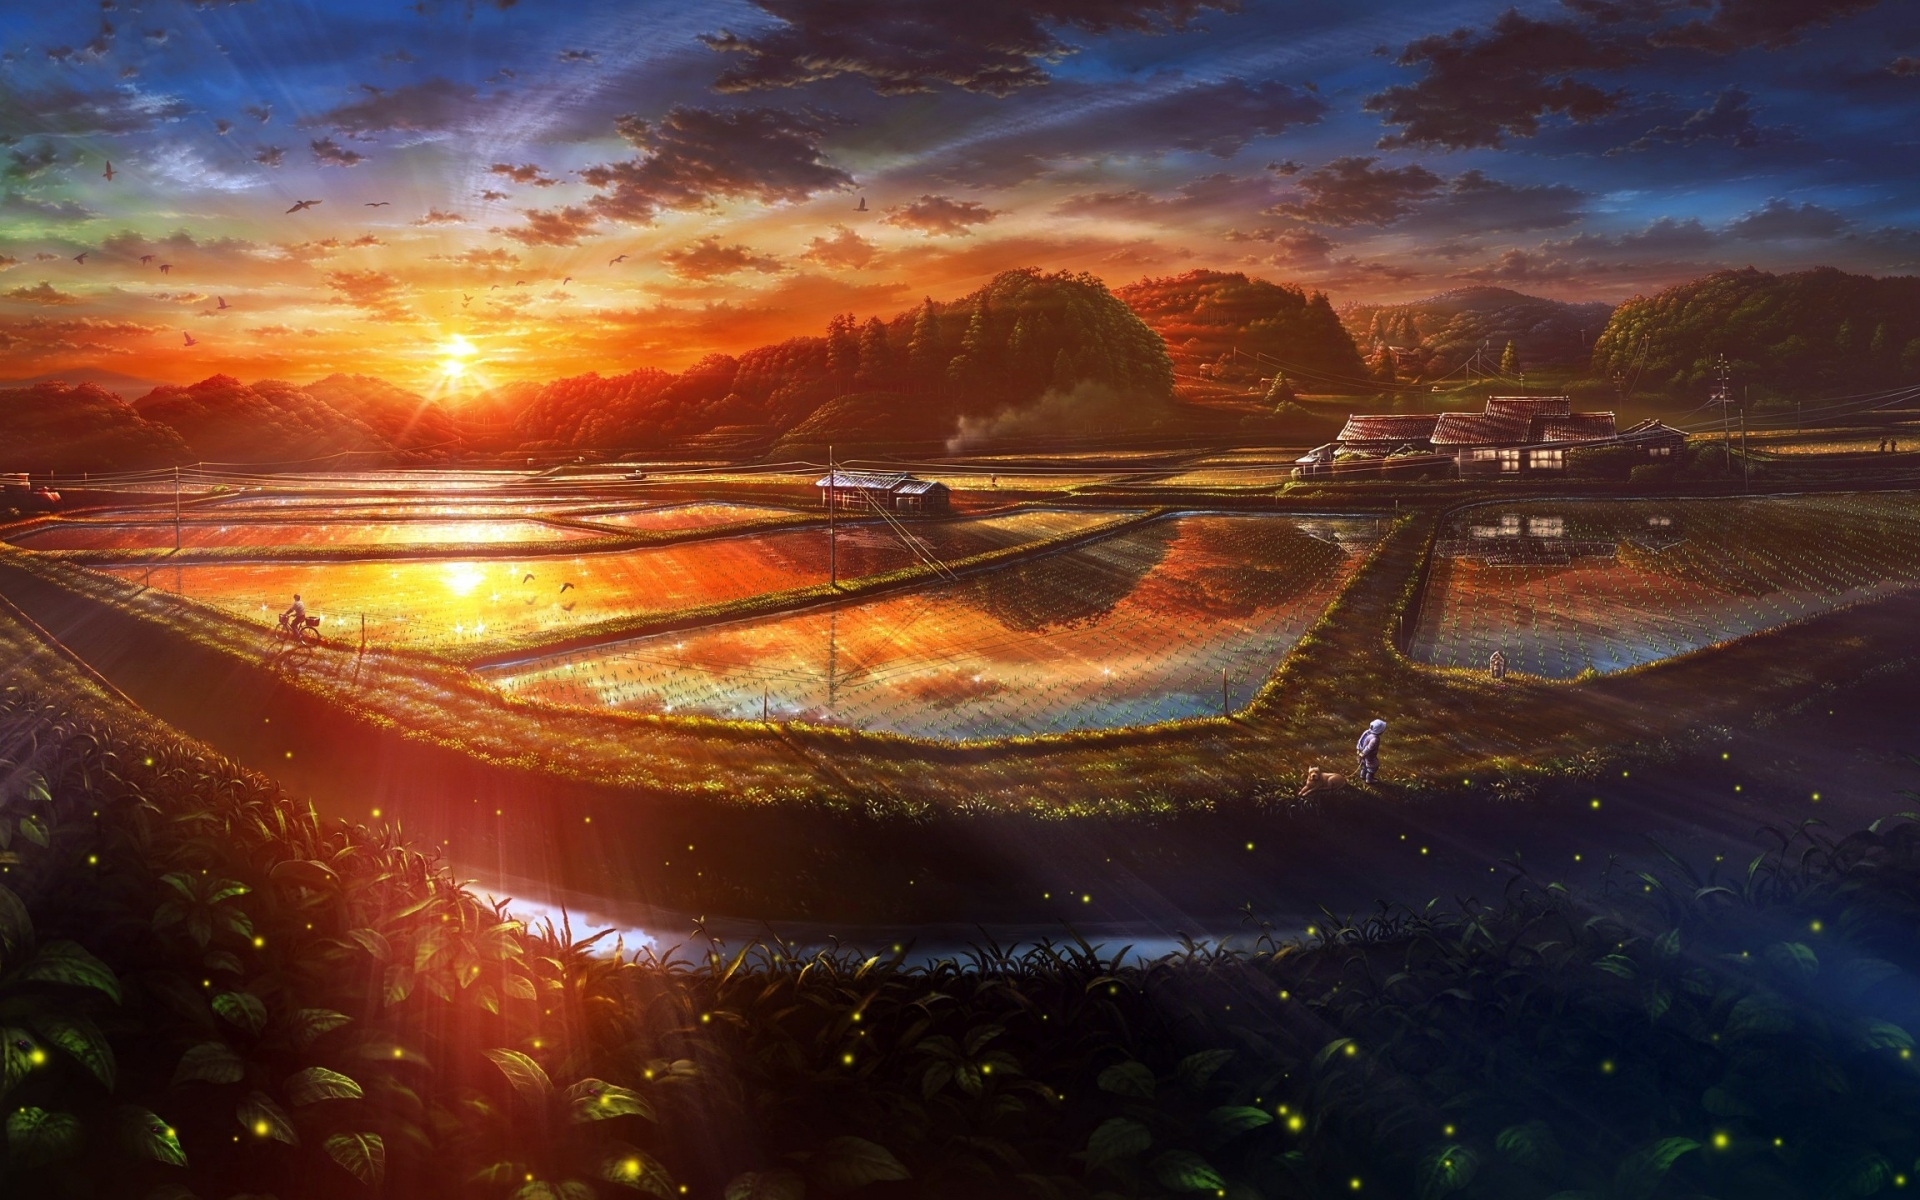 sunset anime scenery drawn wallpapers sunset anime